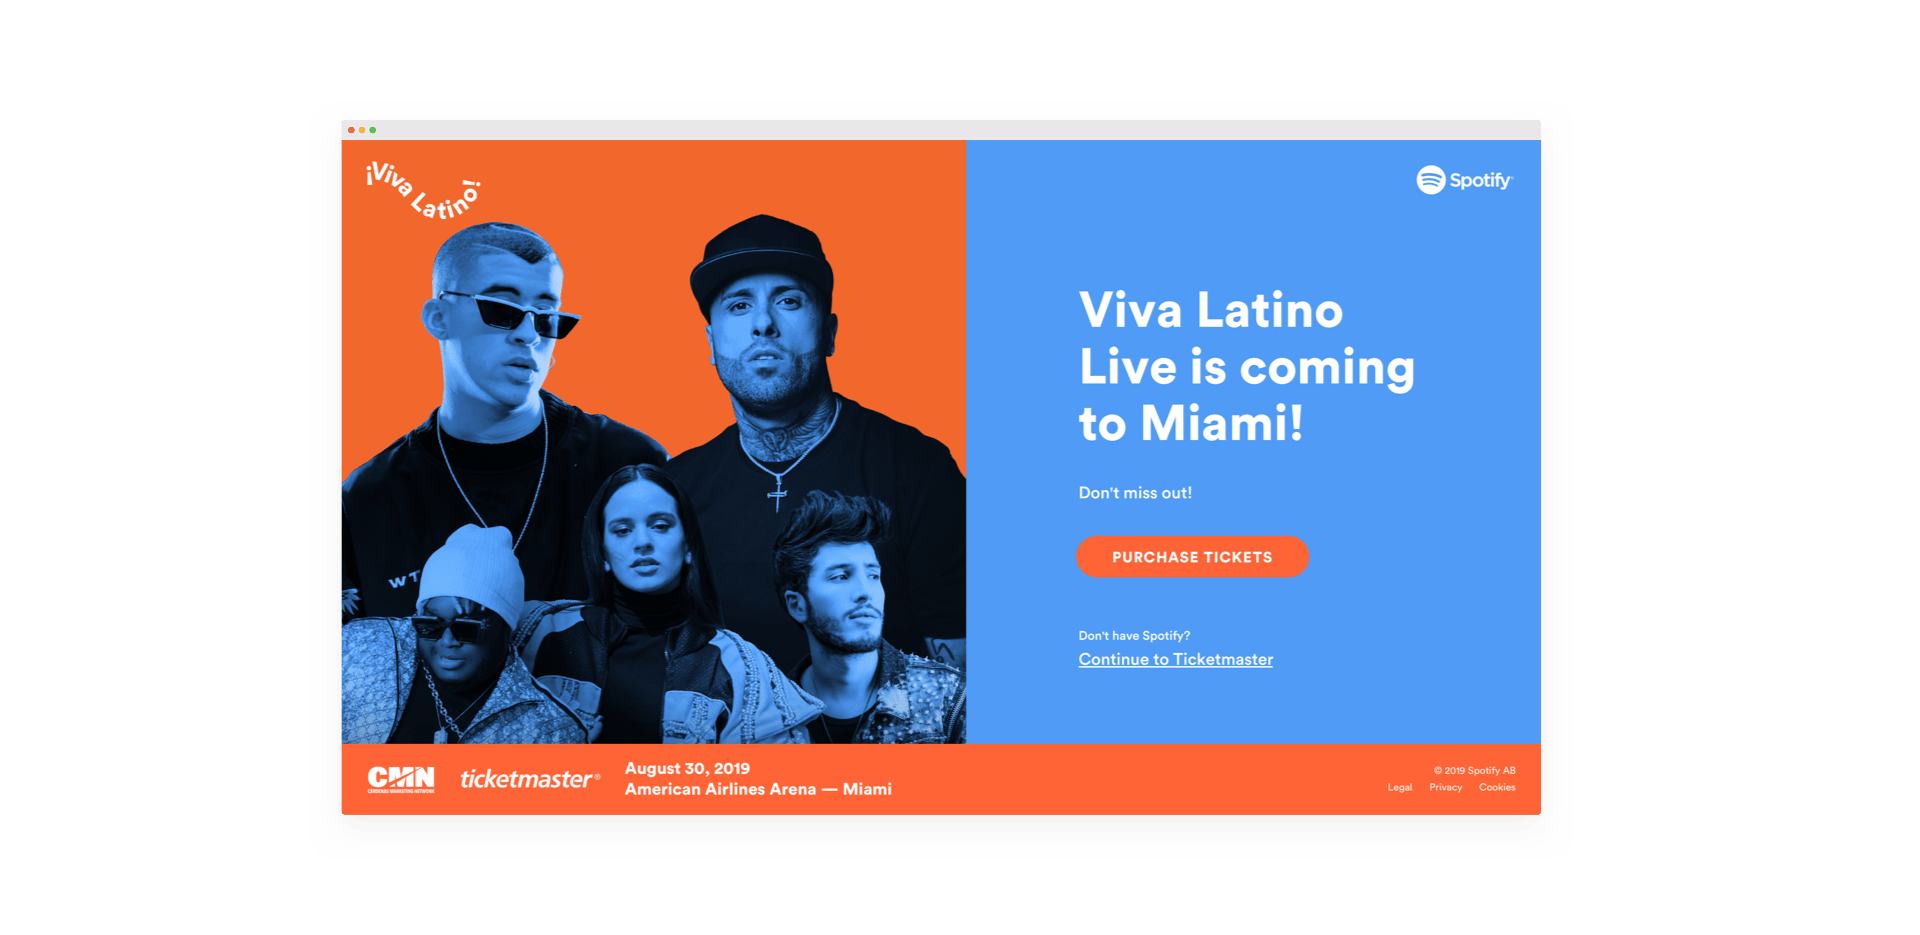 Screenshot of the Viva Latino Live landing page